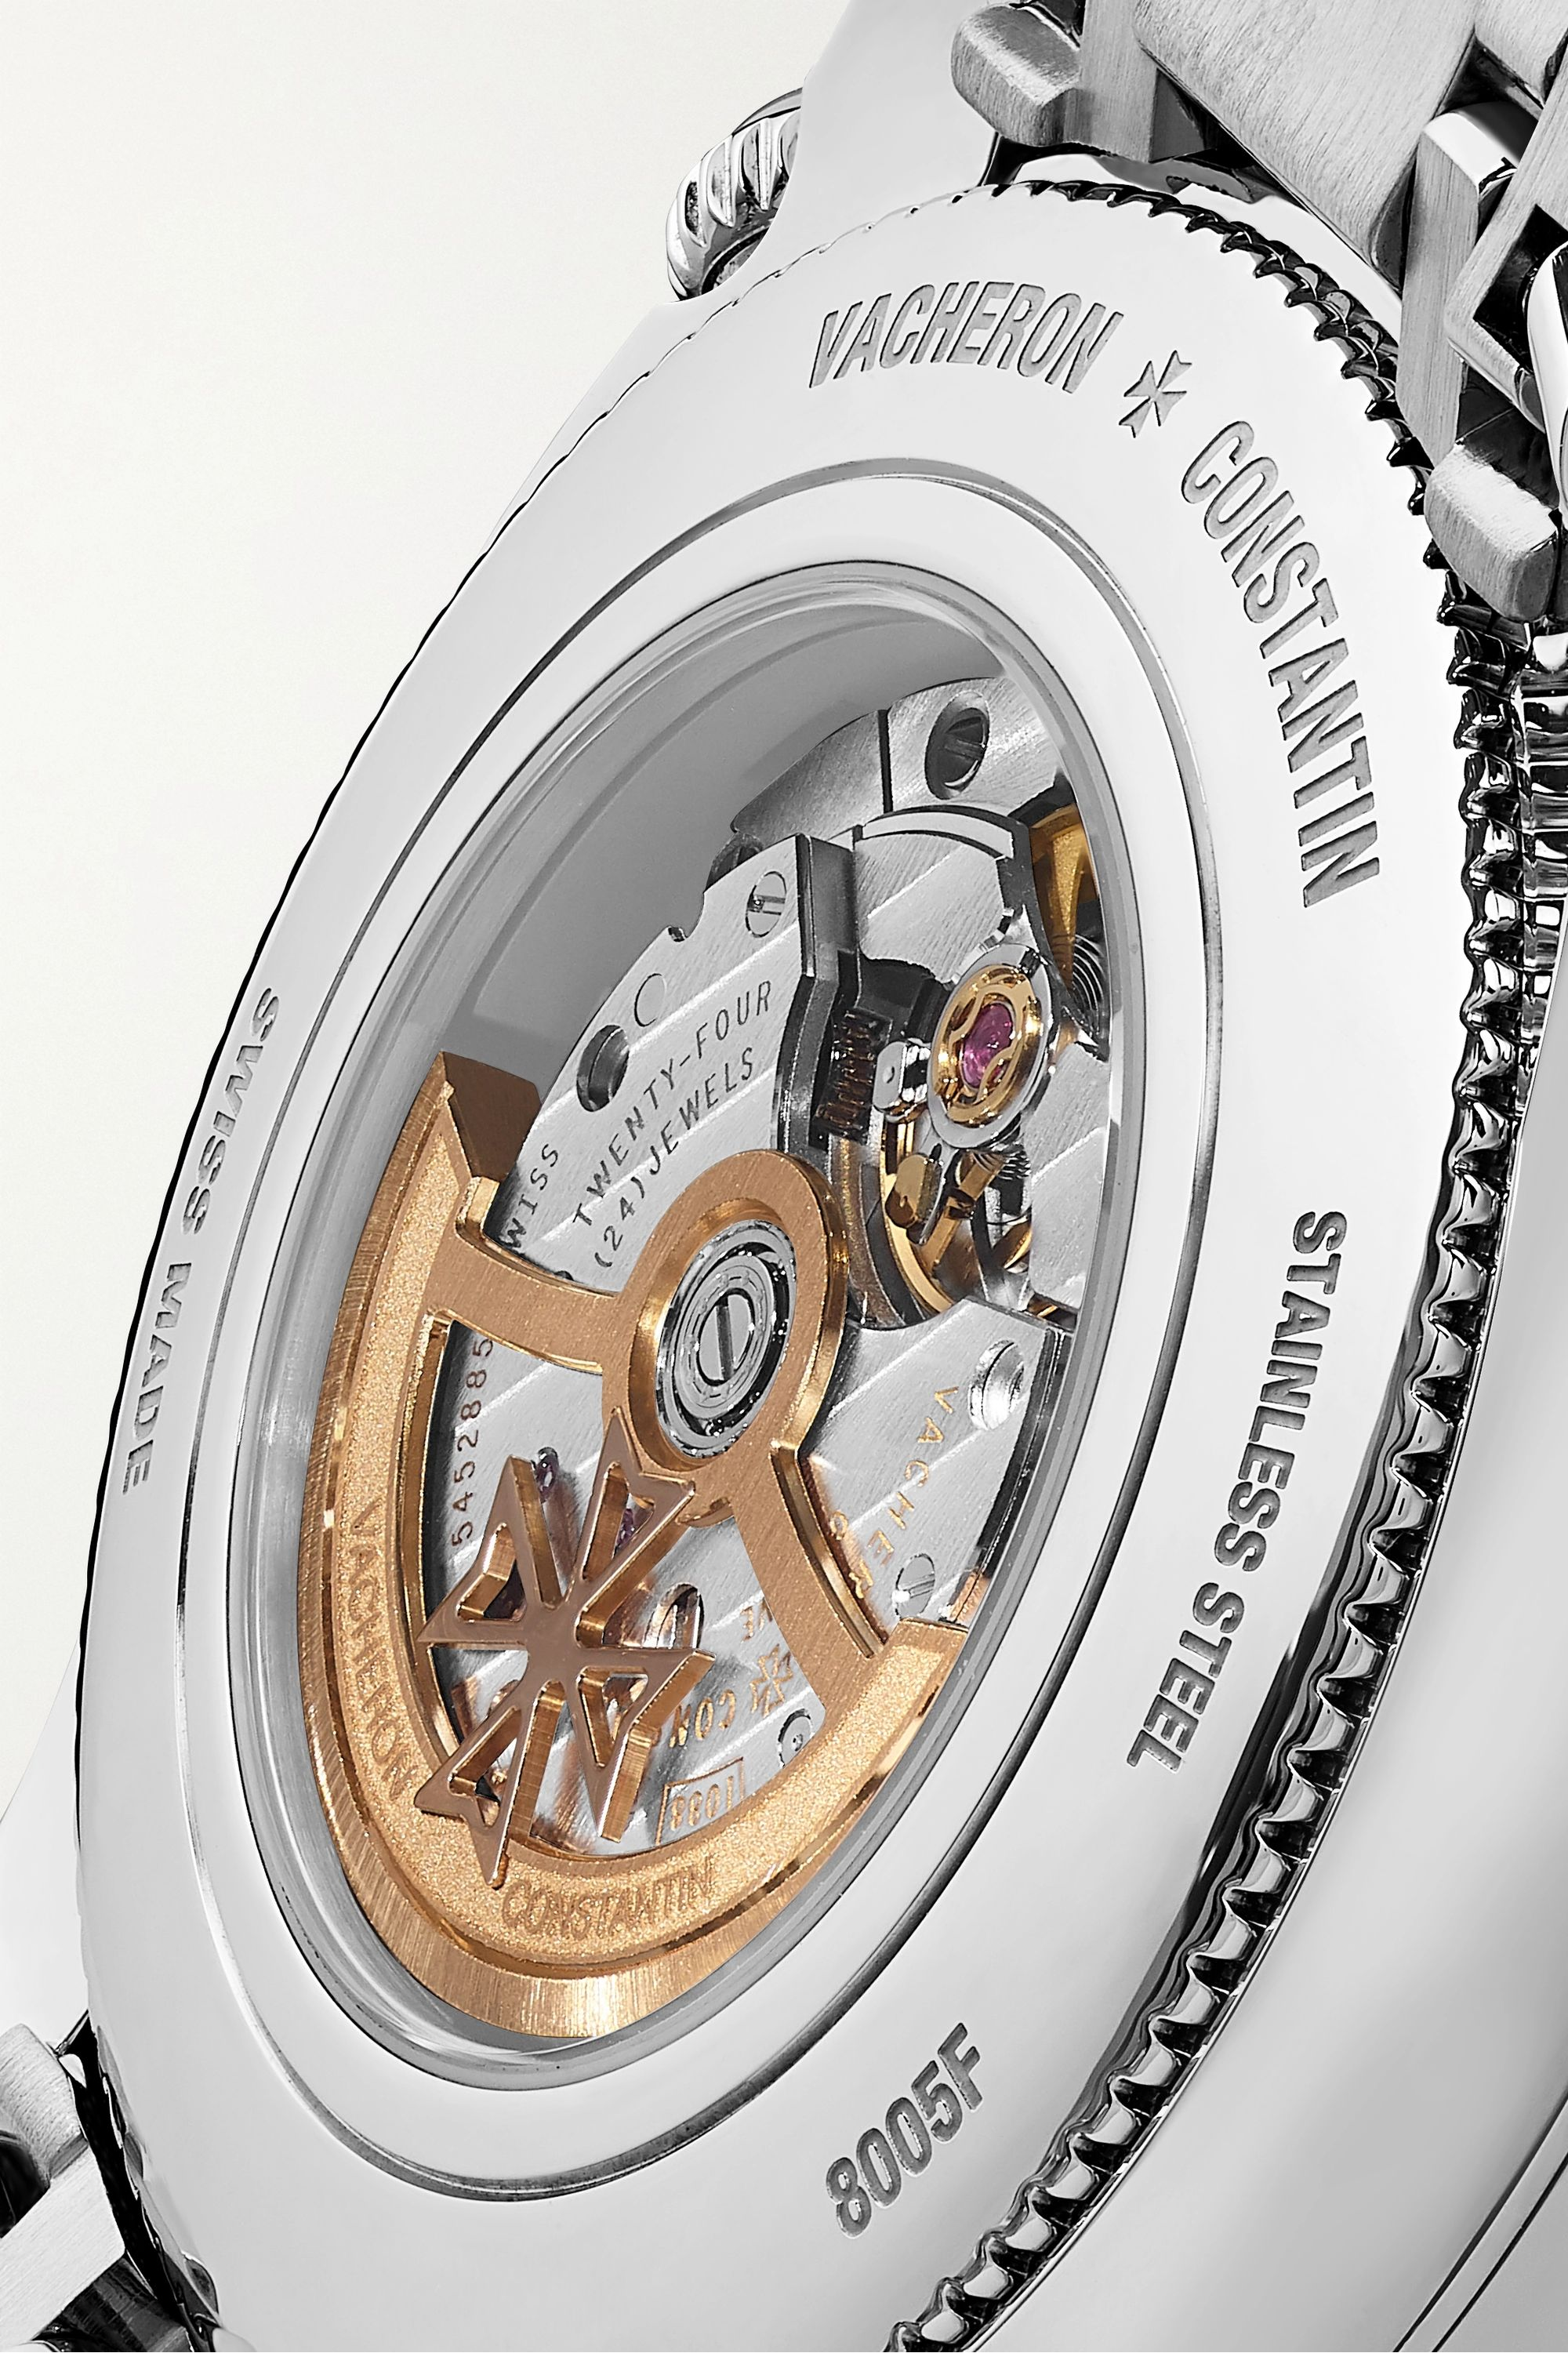 Vacheron Constantin Egérie Automatic Moon-Phase 37mm stainless steel and diamond watch